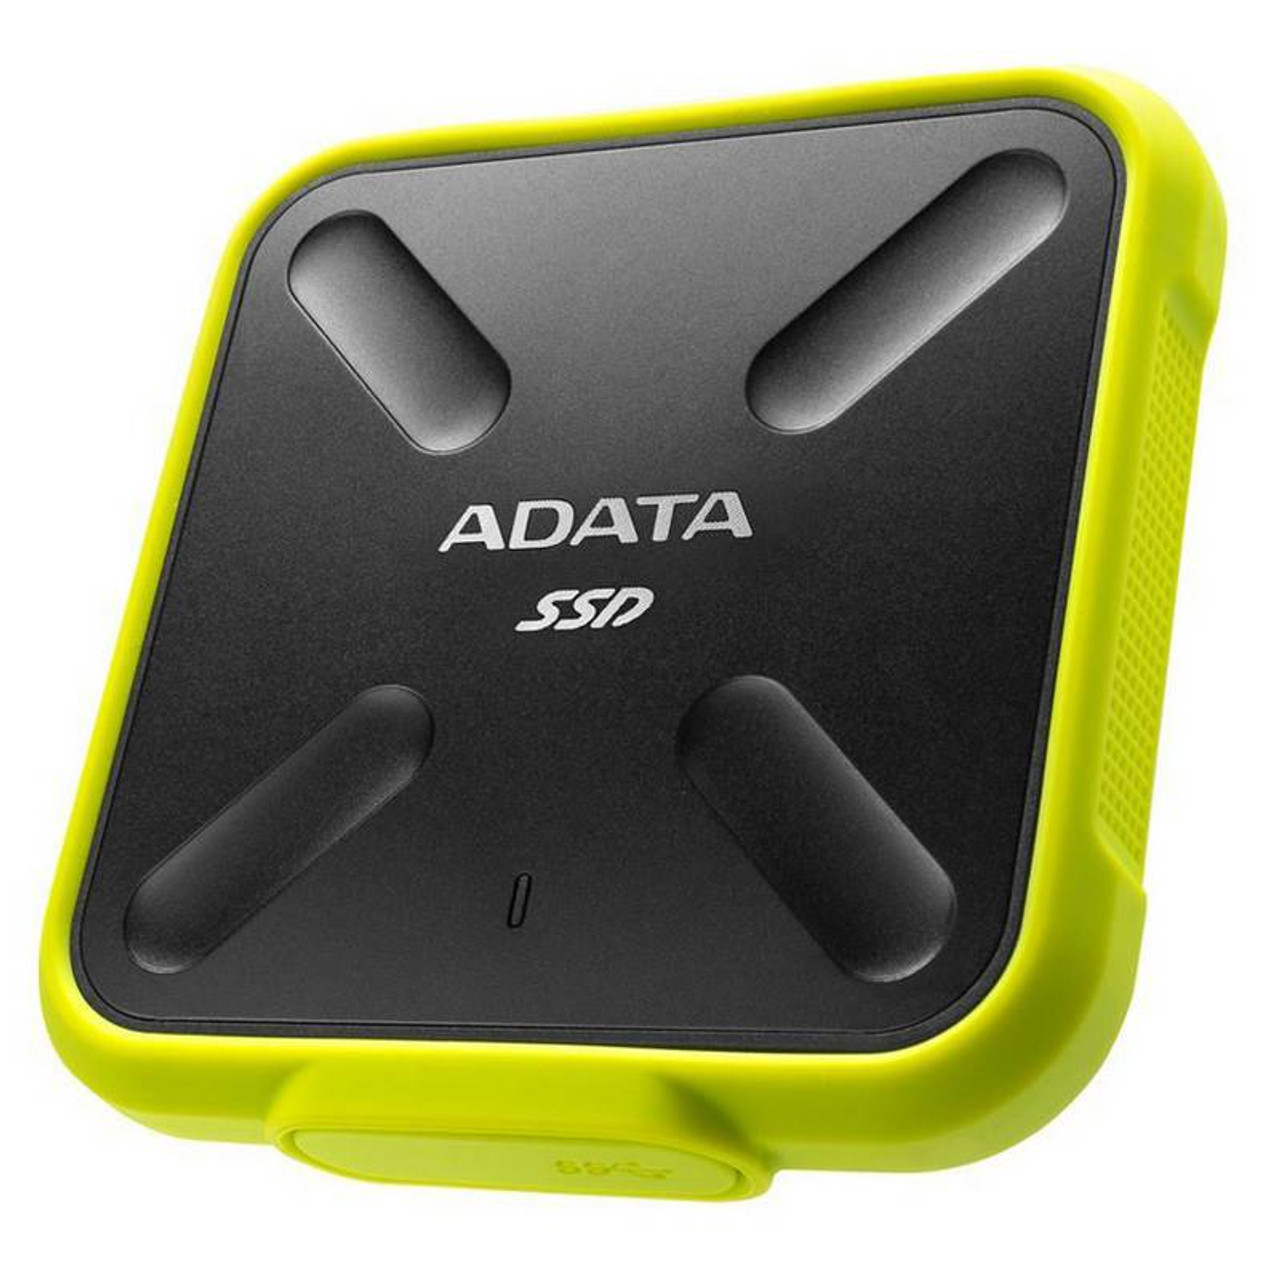 Image for Adata SD700 1TB USB 3.1 Portable External 3D NAND SSD - Yellow CX Computer Superstore